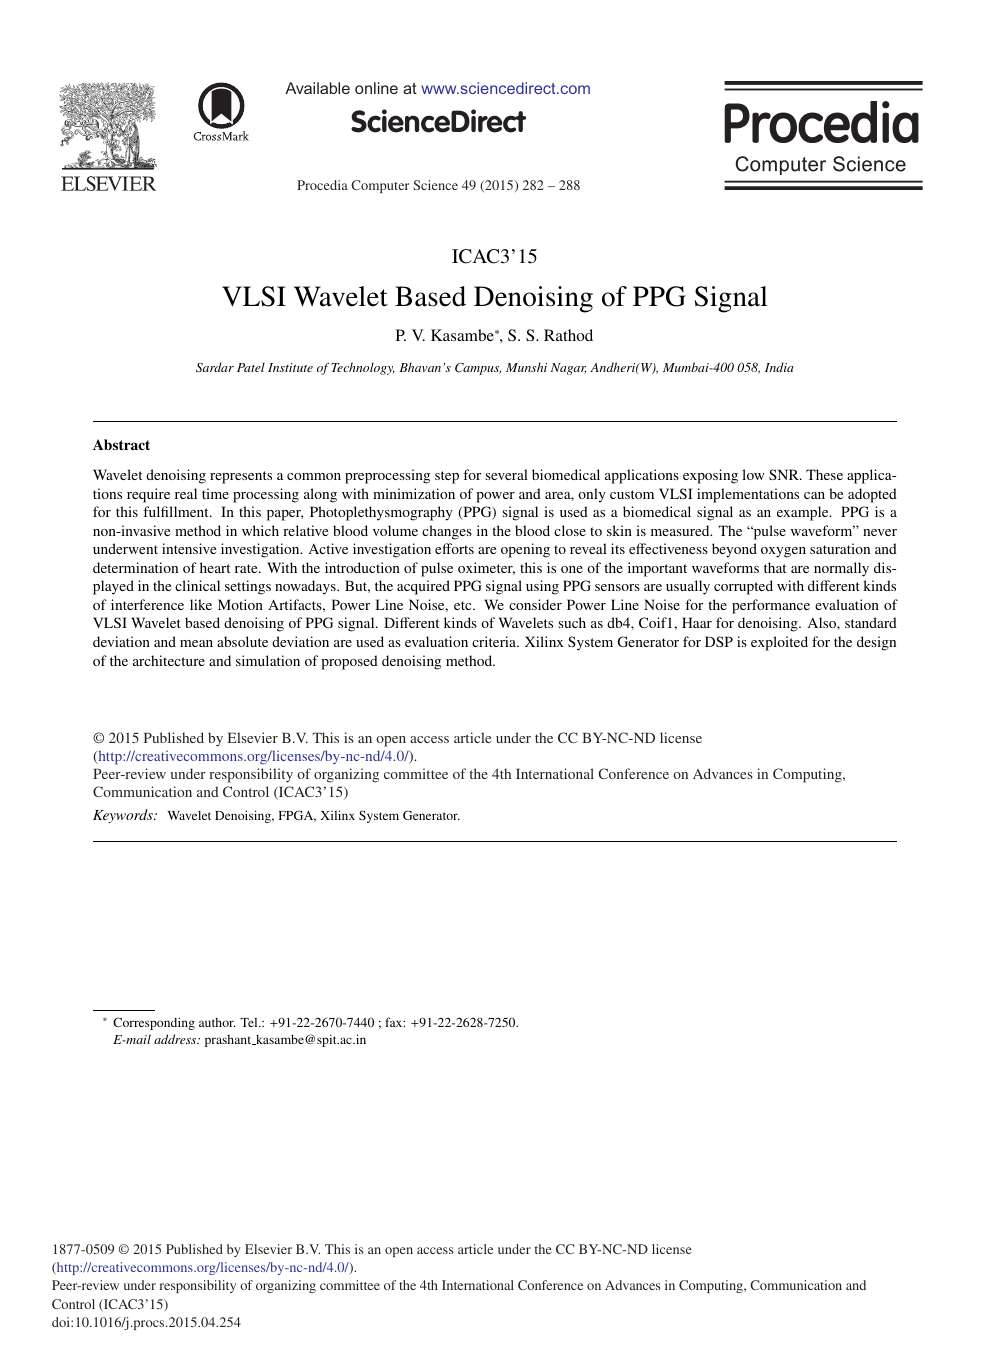 VLSI Wavelet Based Denoising of PPG Signal – topic of